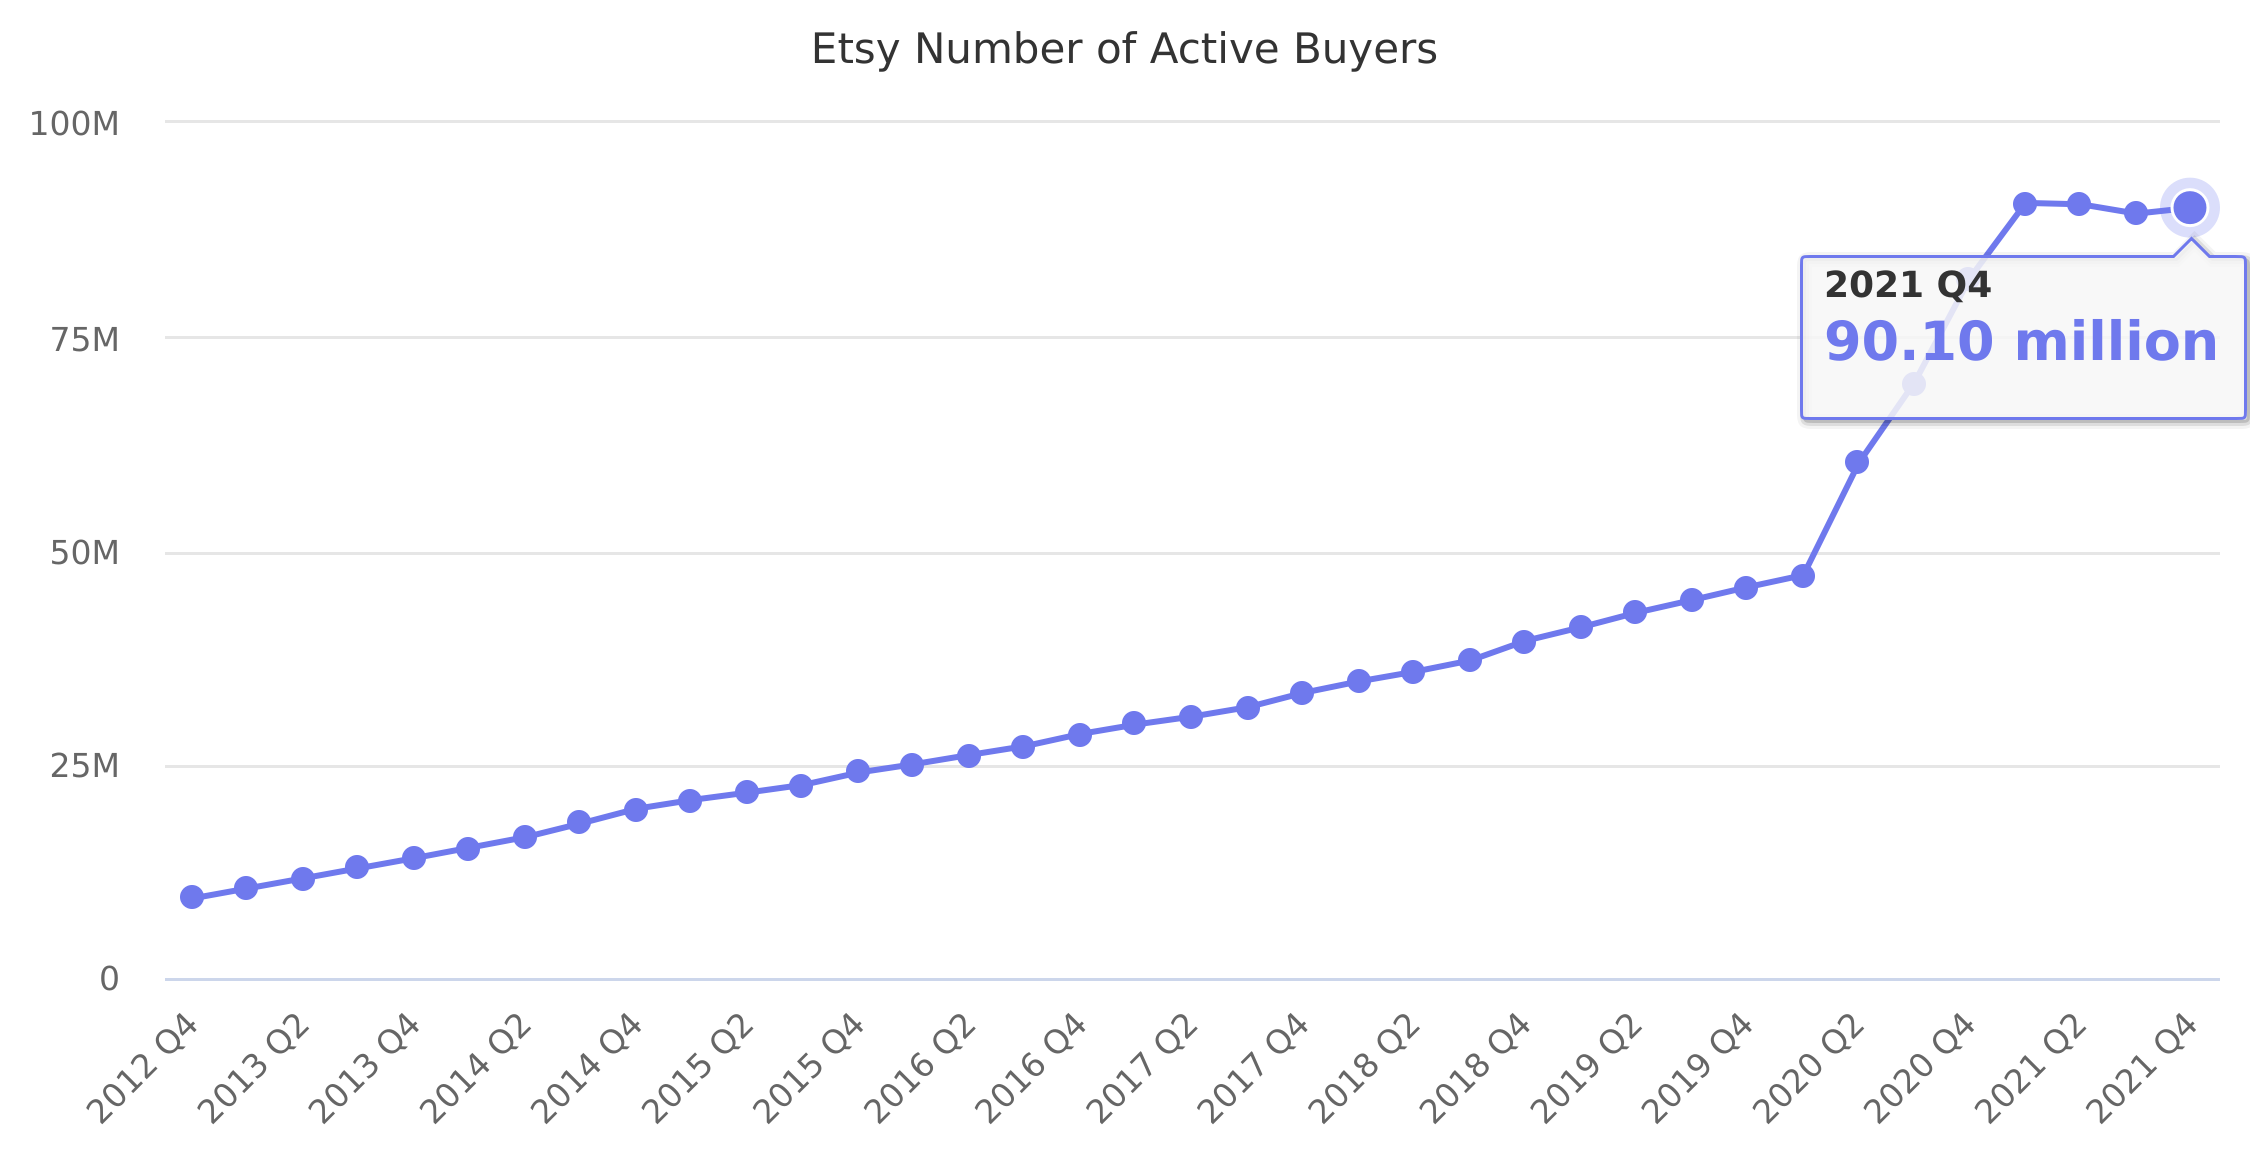 Etsy Number of Active Buyers 2012-2020